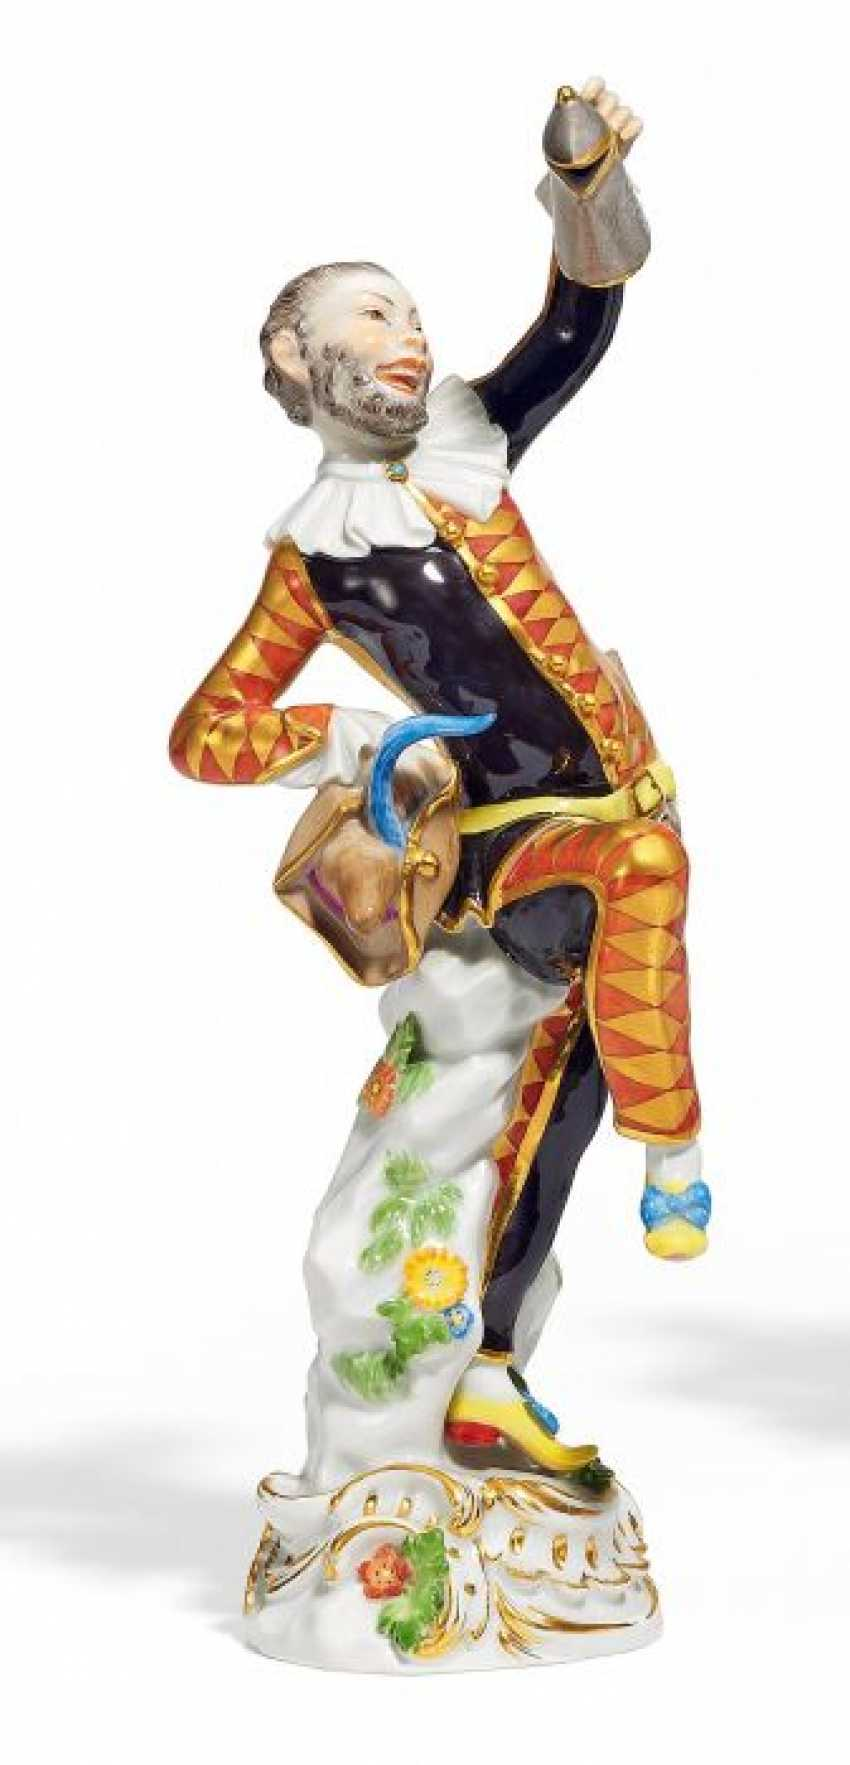 HARLEQUIN WITH A PEWTER MUG FROM THE 'COMMEDIA DELL'ARTE'. Meissen. 1973. Model By J. J. Kaendler.